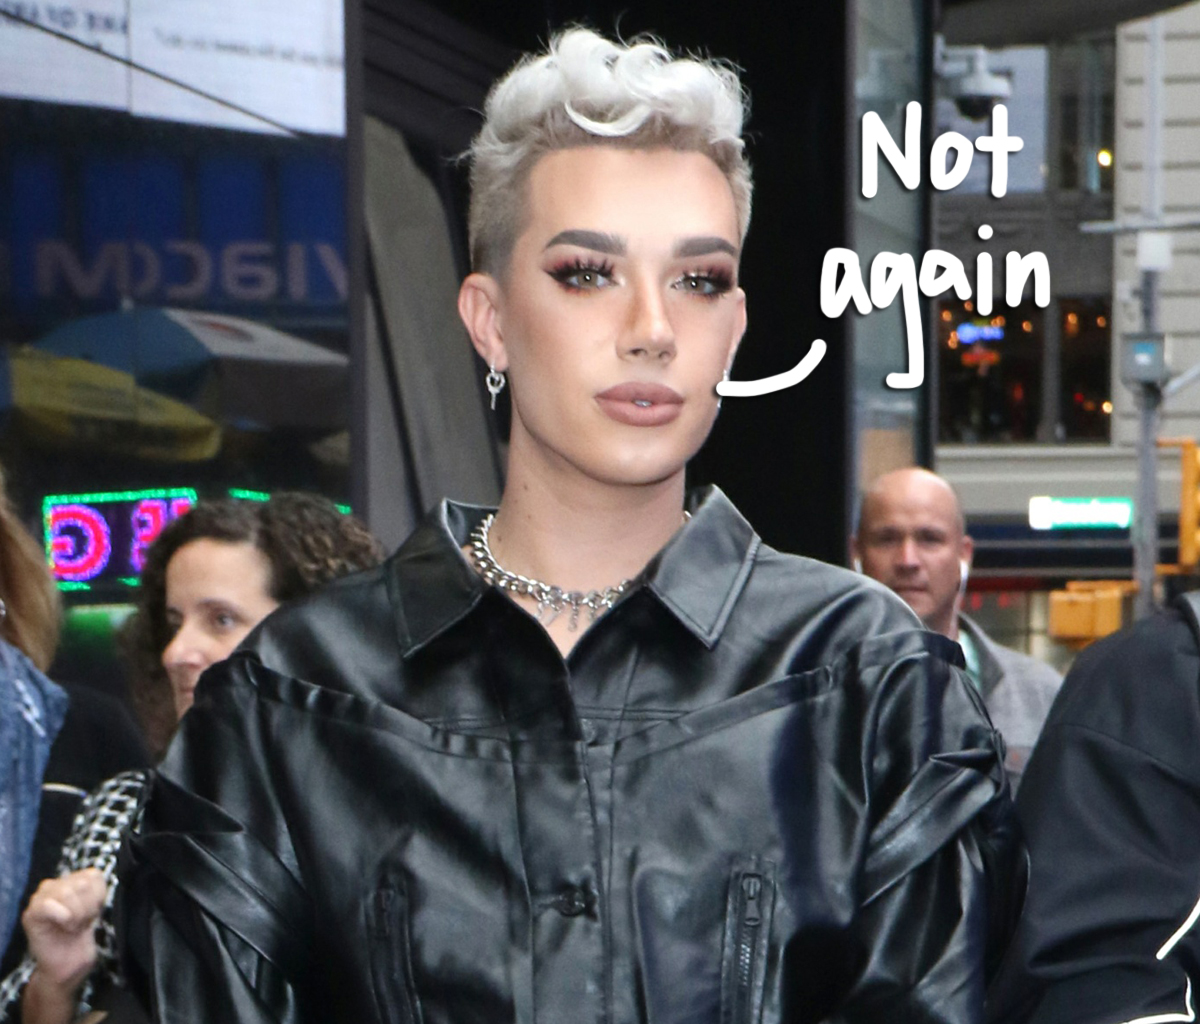 James Charles Exposed For Allegedly Messaging Yet Another Underage Teen